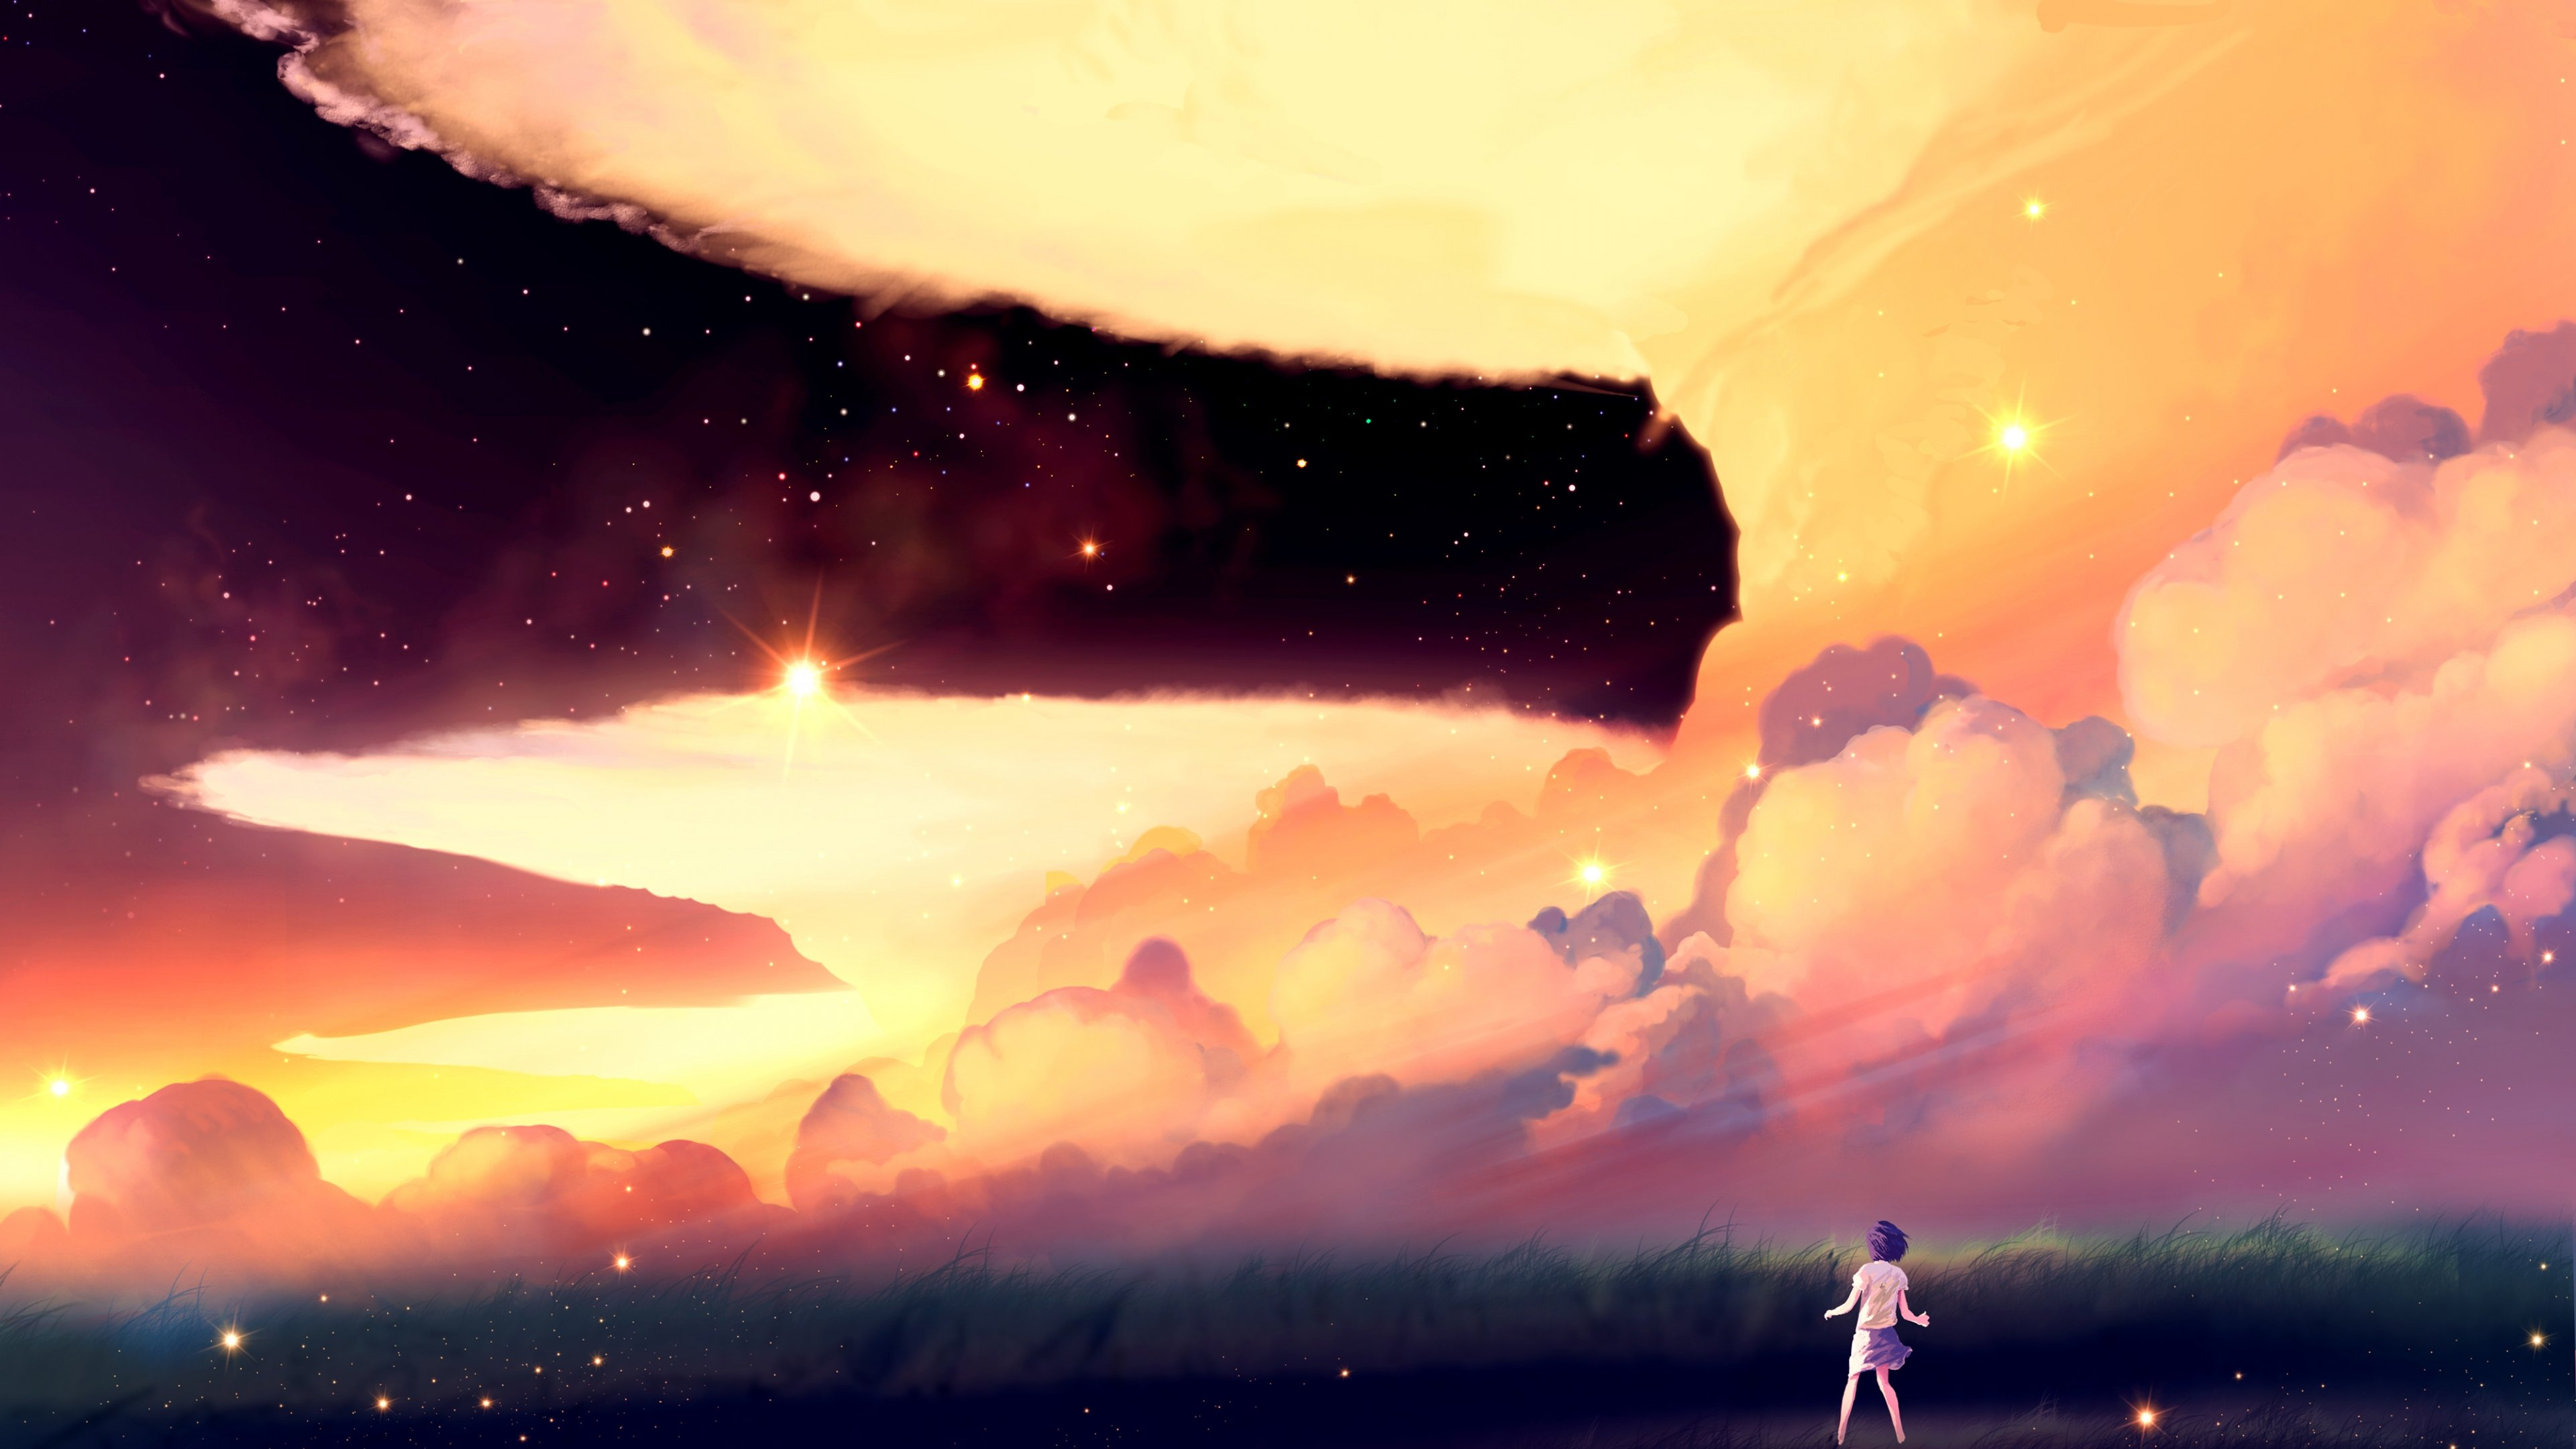 Anime 4k Wallpapers For Your Desktop Or Mobile Screen Free And